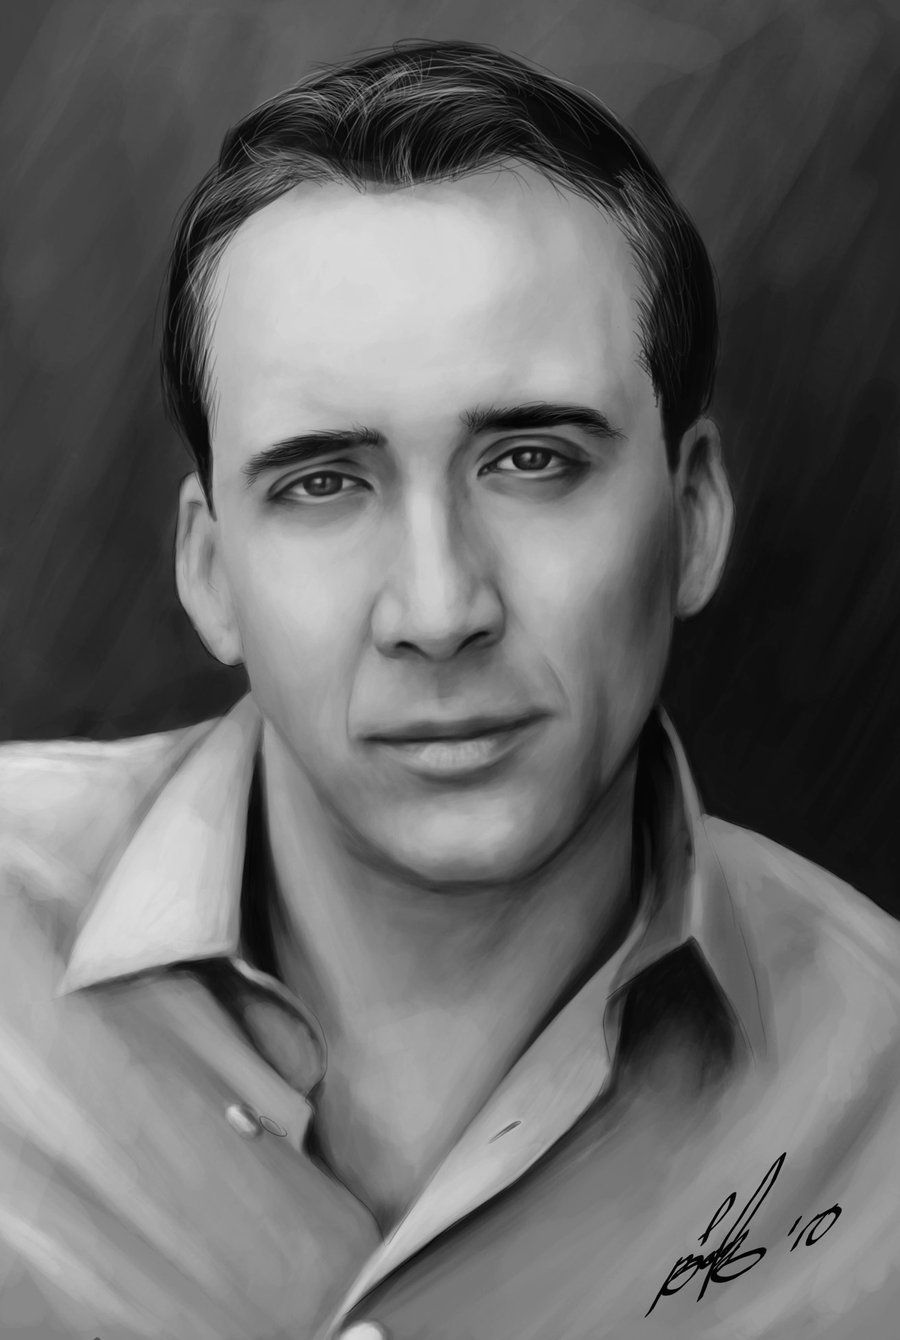 Hd Wallpapers High Definition Hdwalle Nicolas Cage Nicolas Cage Nicolas Cage Movies Nicolas